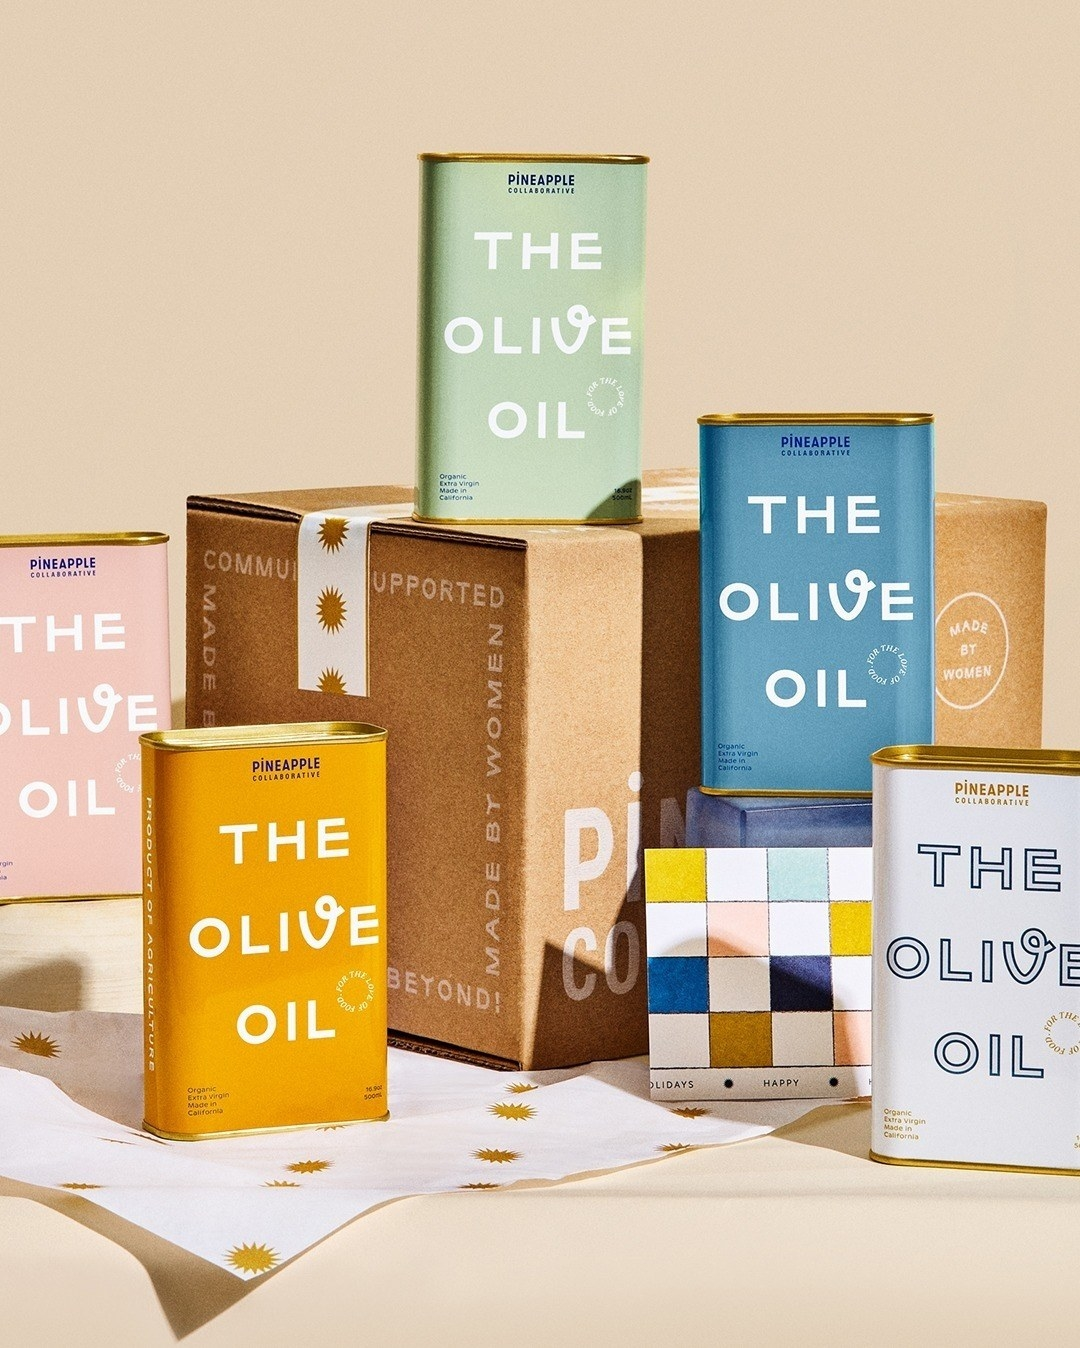 the tins of olive oil in yellow, pink, blue, mint green, and white